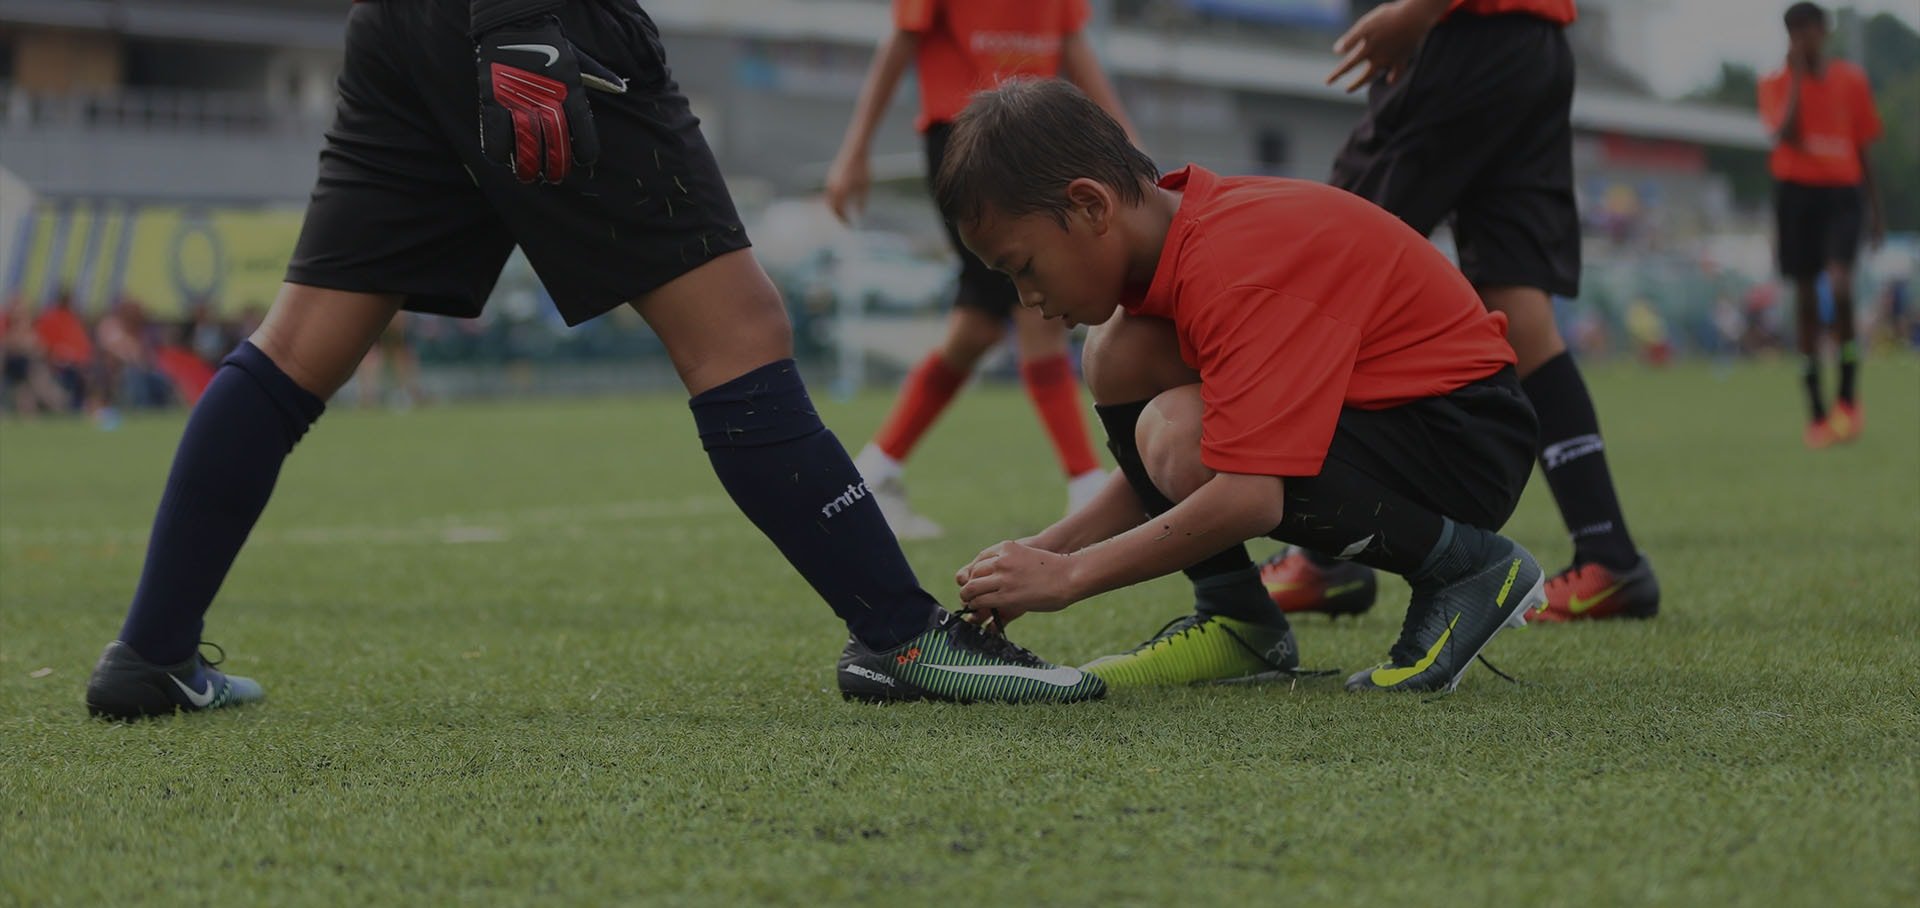 1 kid tying his teammate's shoelaces